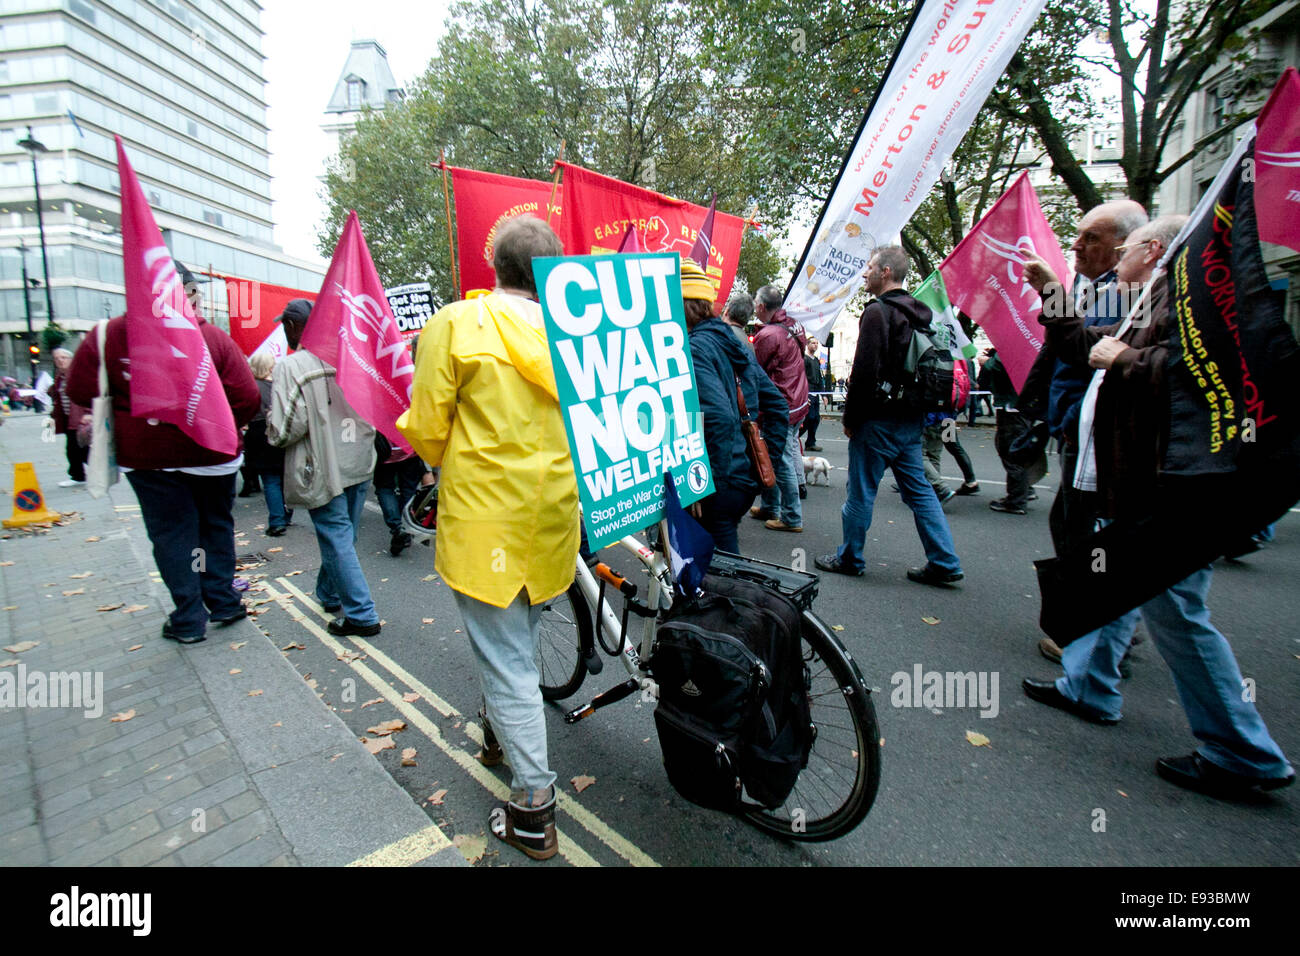 London, UK. 18th October 2014. Thousands of protesters  took part in a Britain Needs a Pay Rise march organized - Stock Image